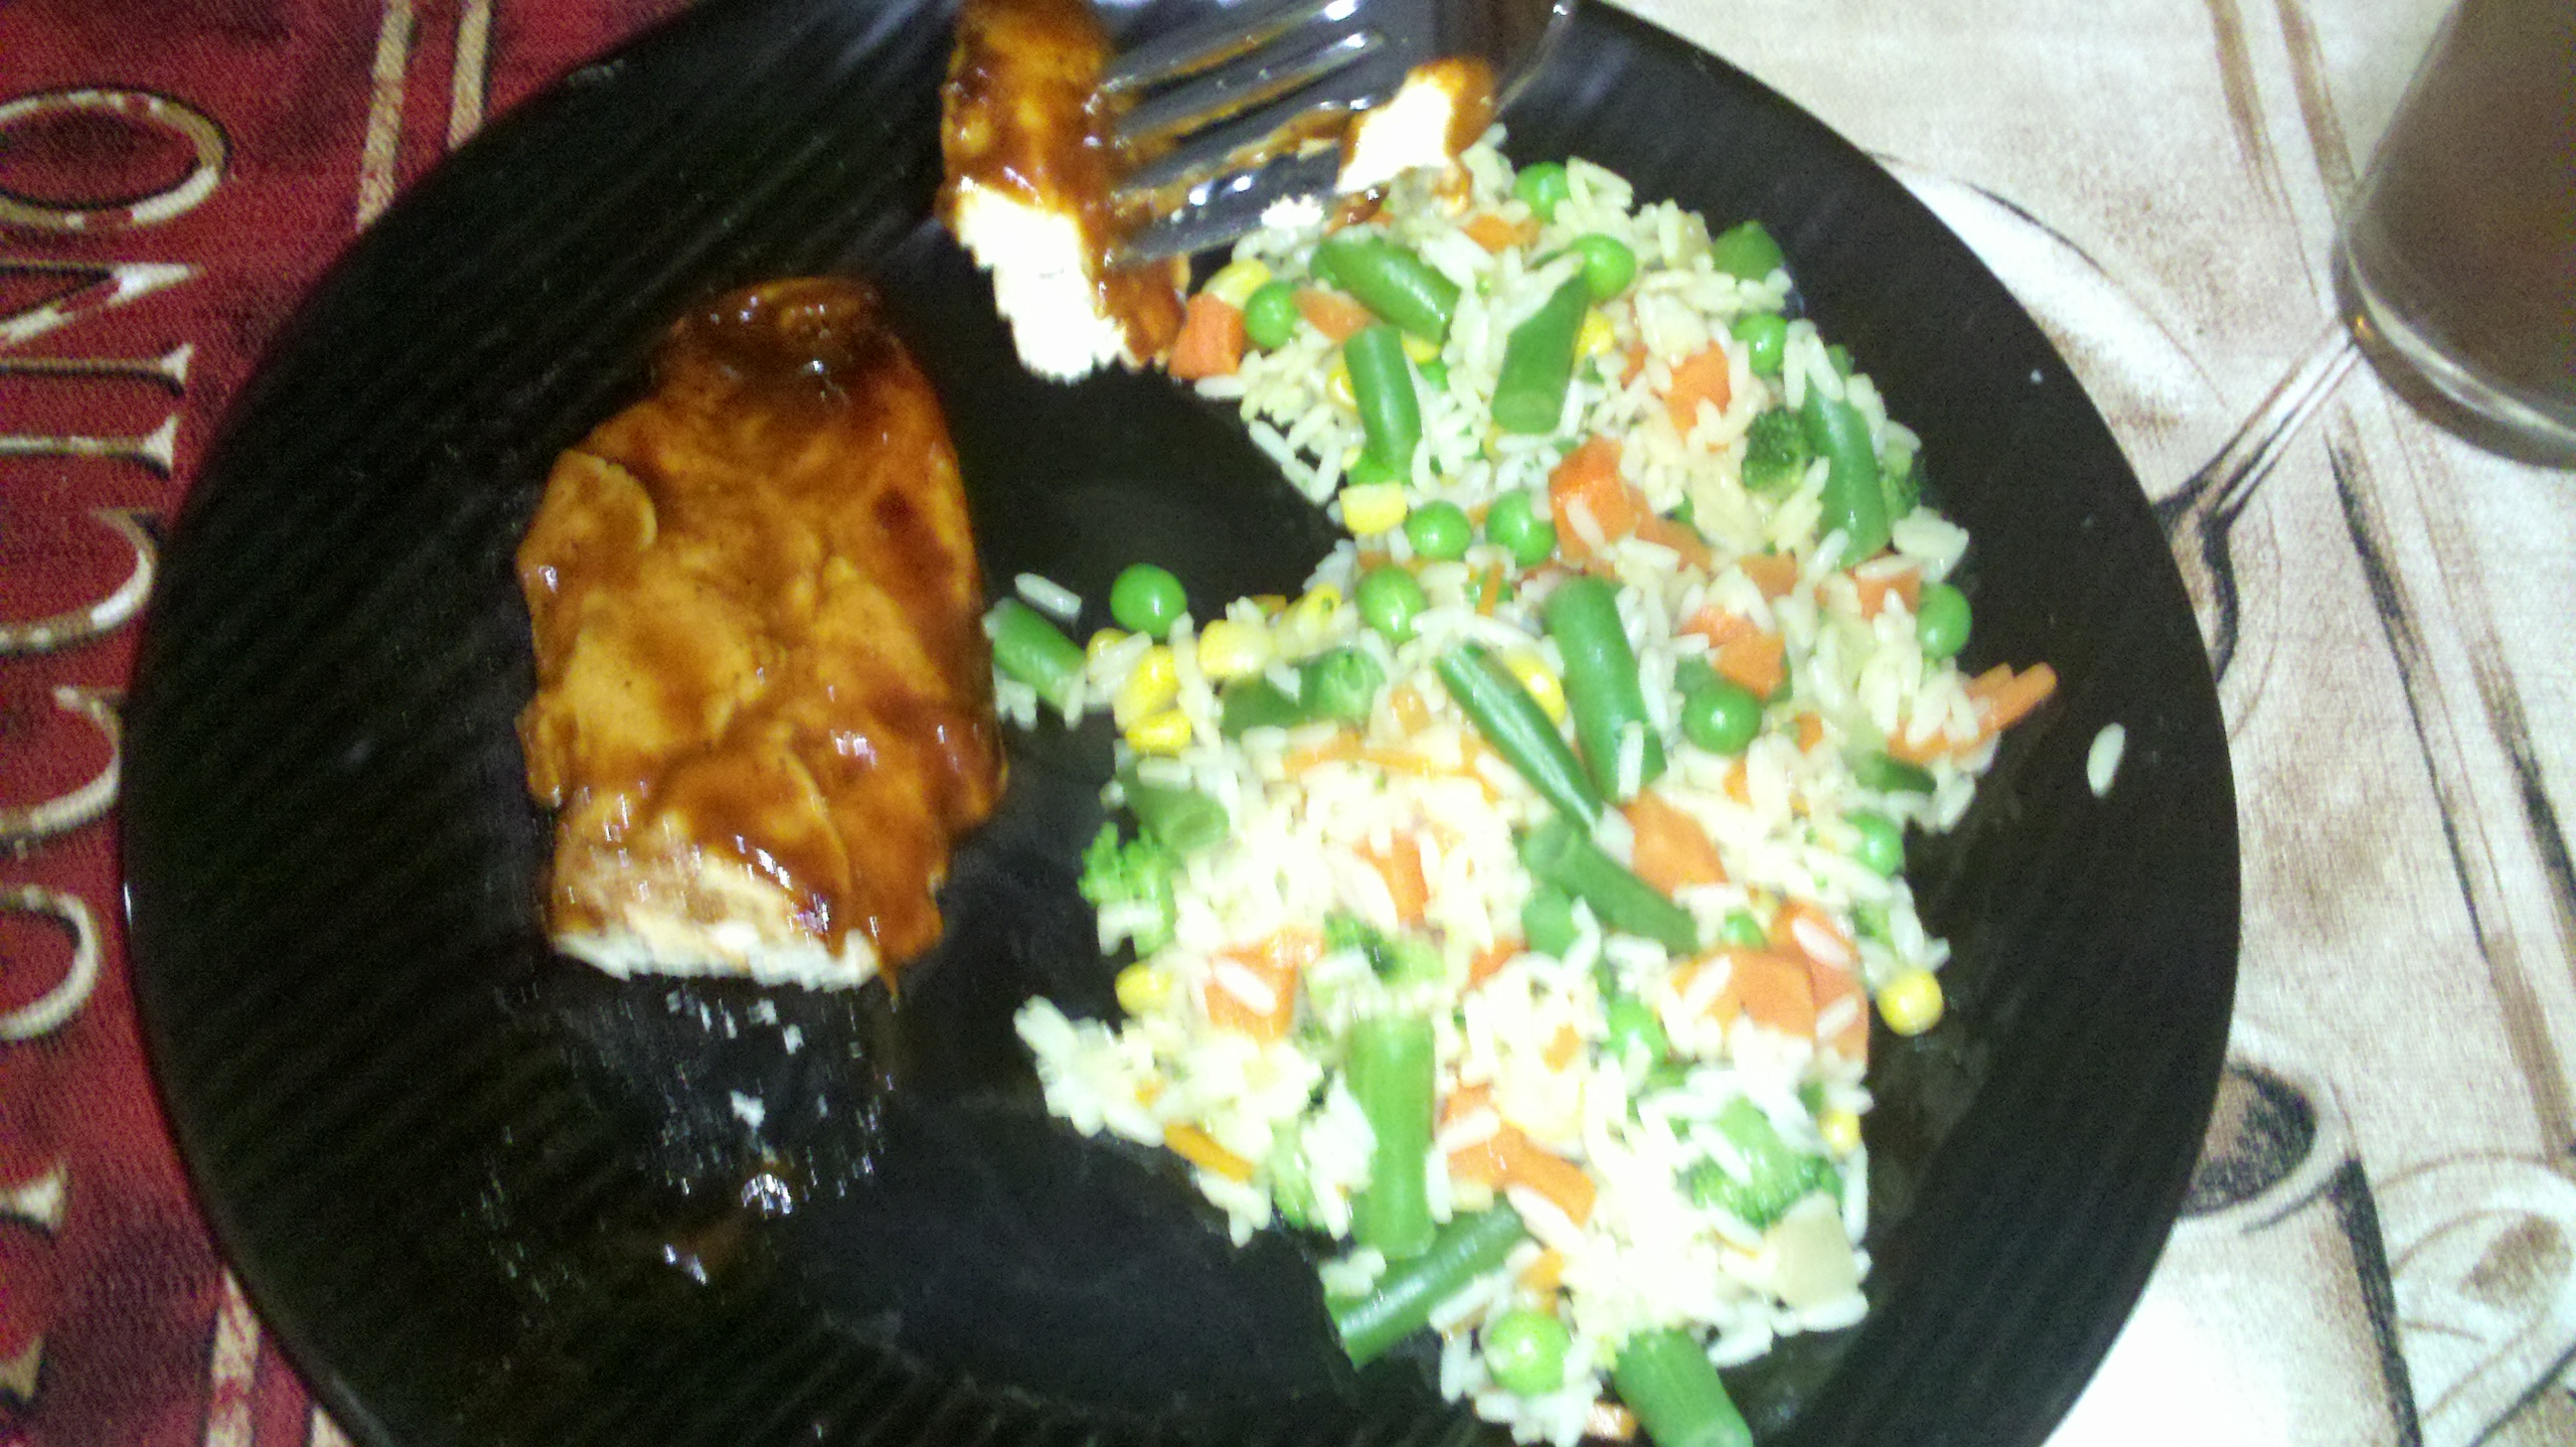 ct :: bbq chicken, rice and veggies for dinner :)